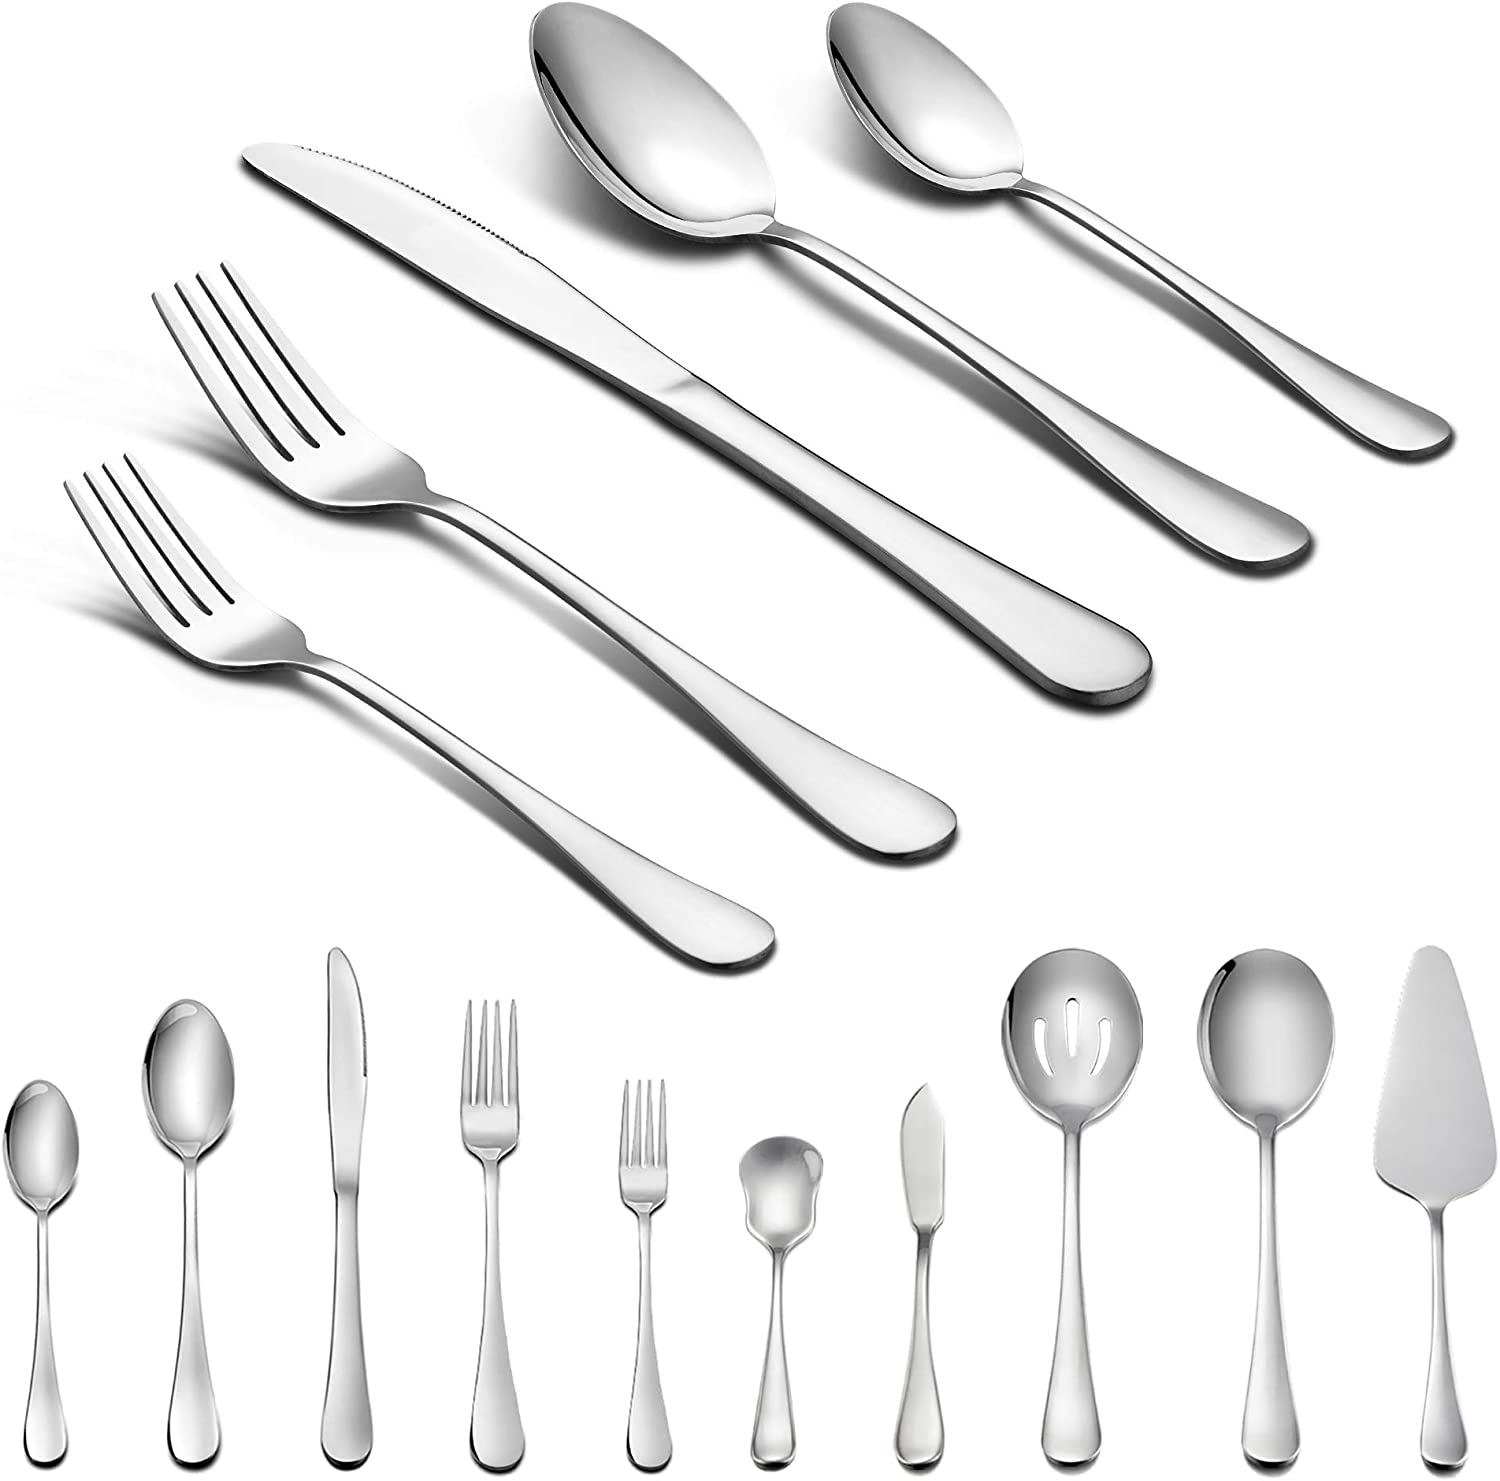 LIANYU 65-Piece Silverware Set with Serving Utensils, Stainless Steel Flatware Cutlery Set for 12, Tableware Eating Utensils, Dishwasher Safe